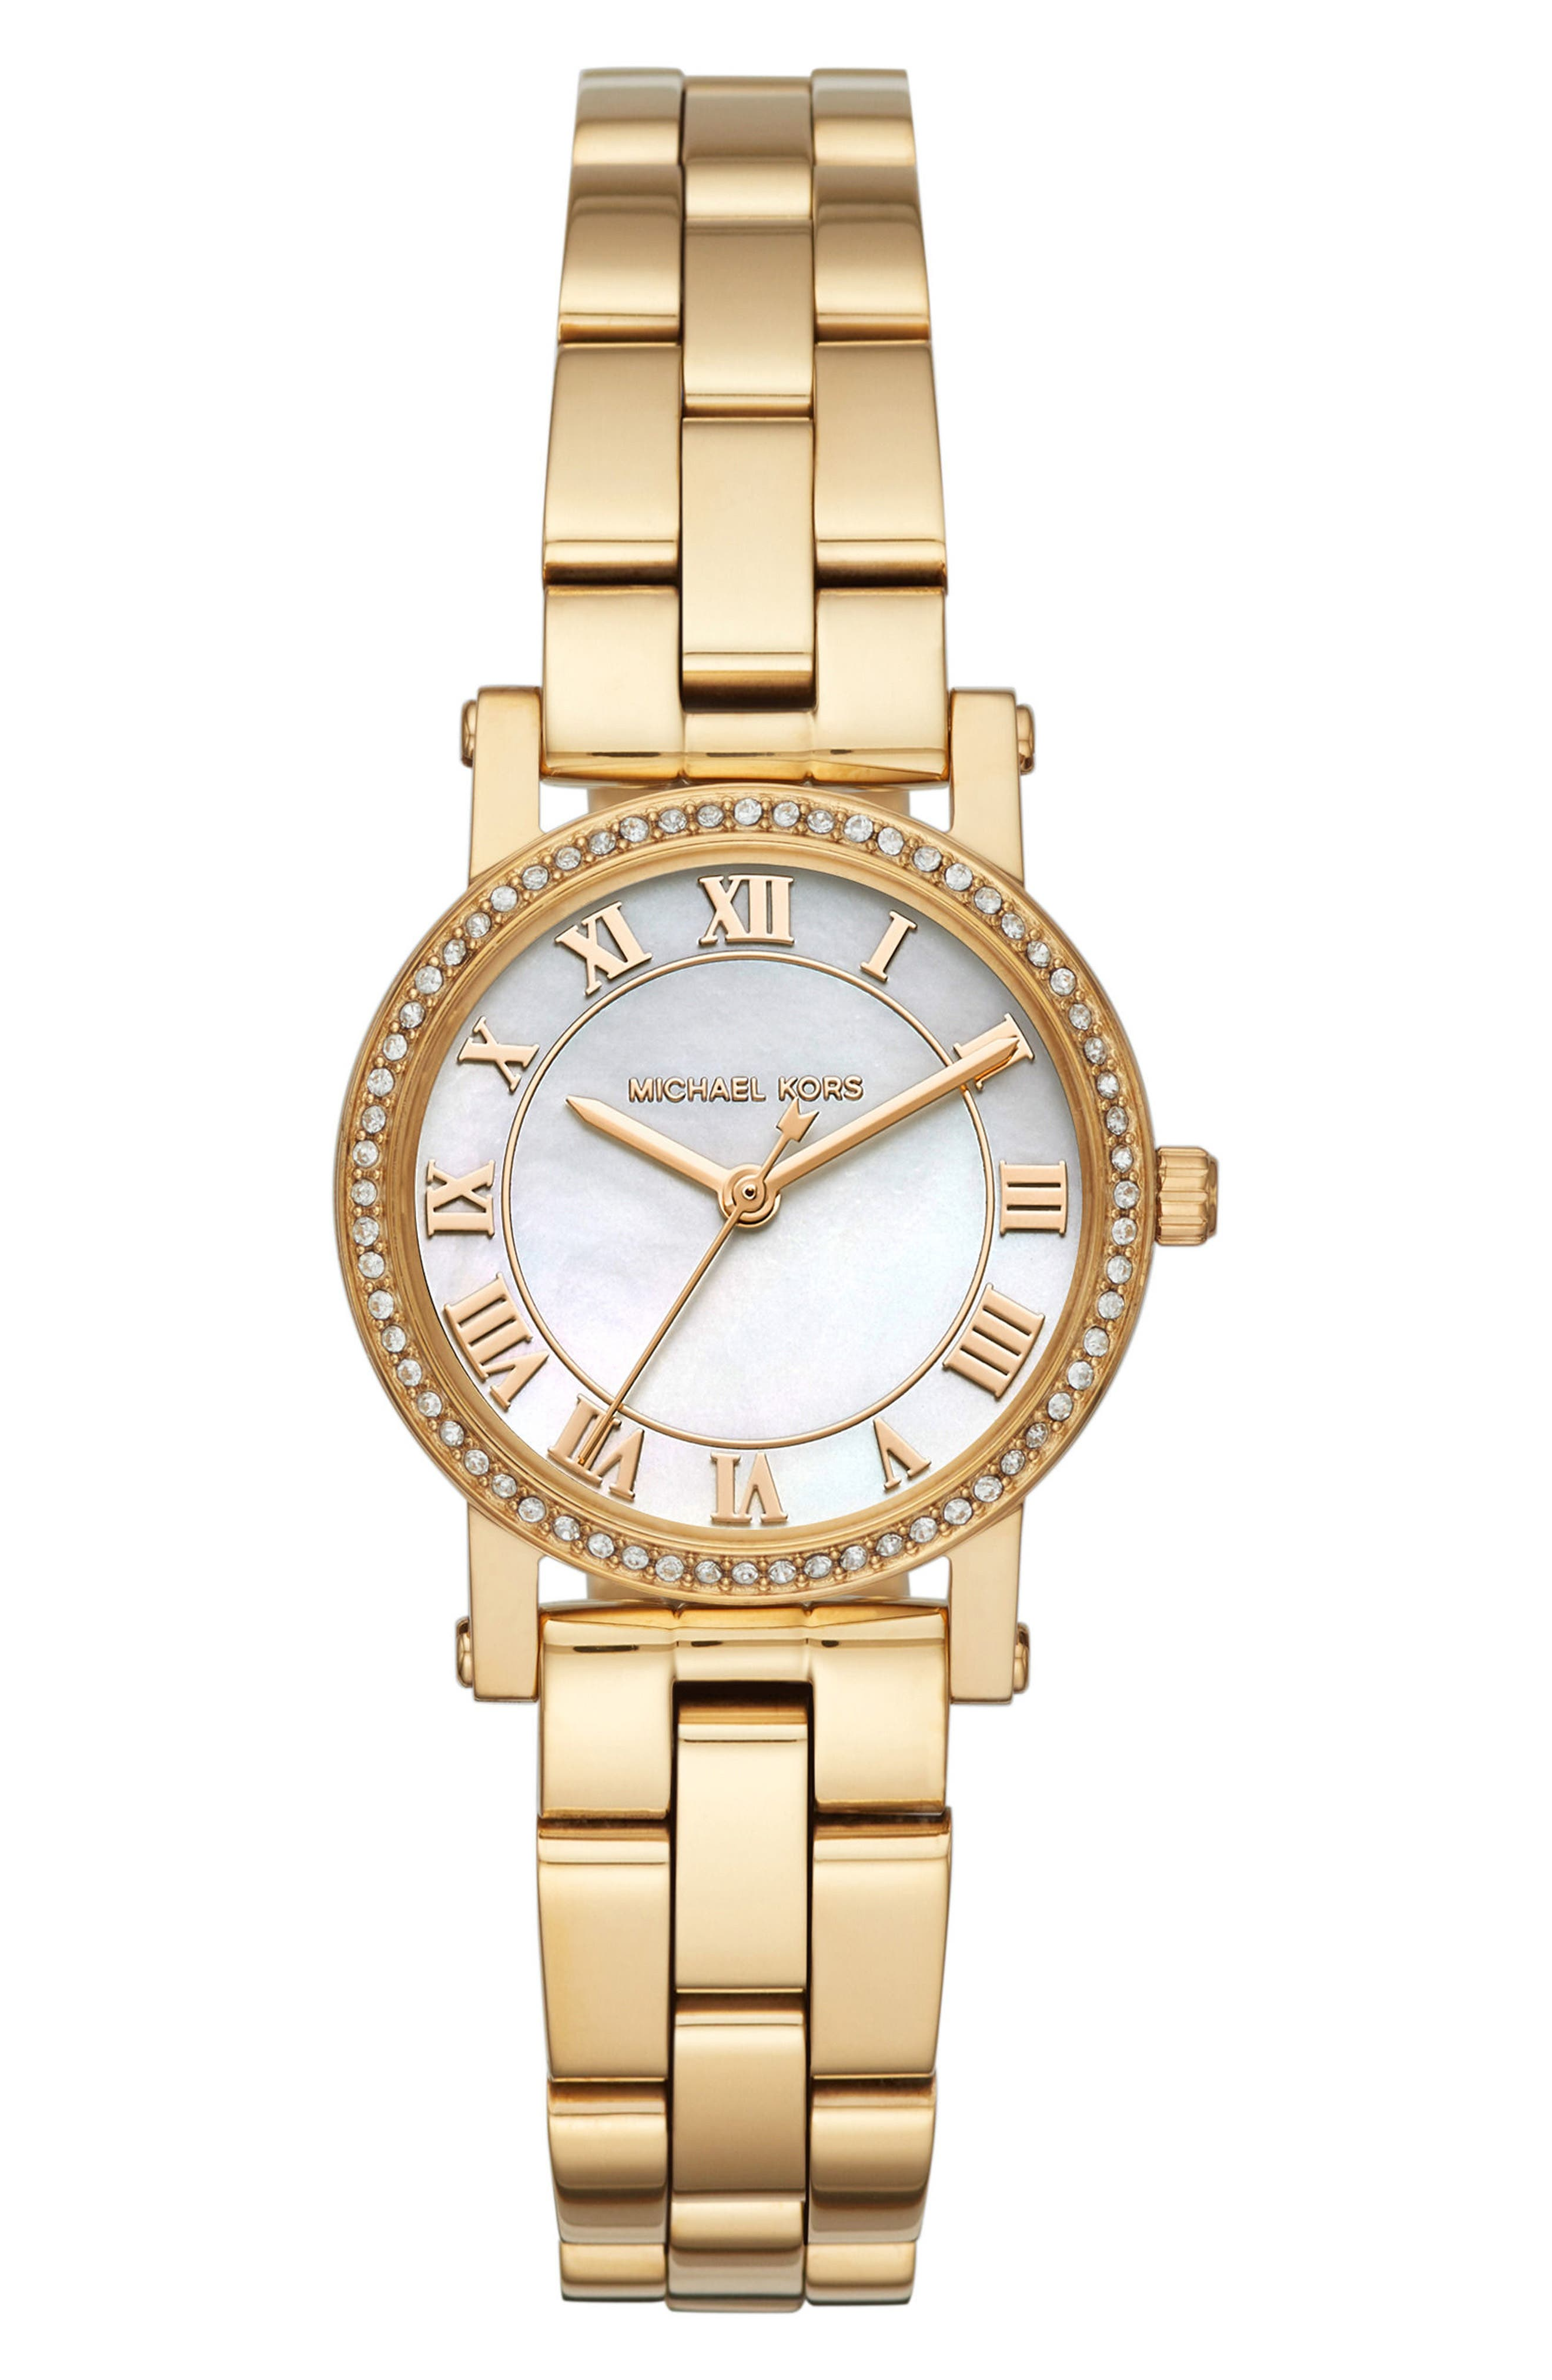 Main Image - Michael Kors Petite Norie Pavé Bracelet Watch, 28mm